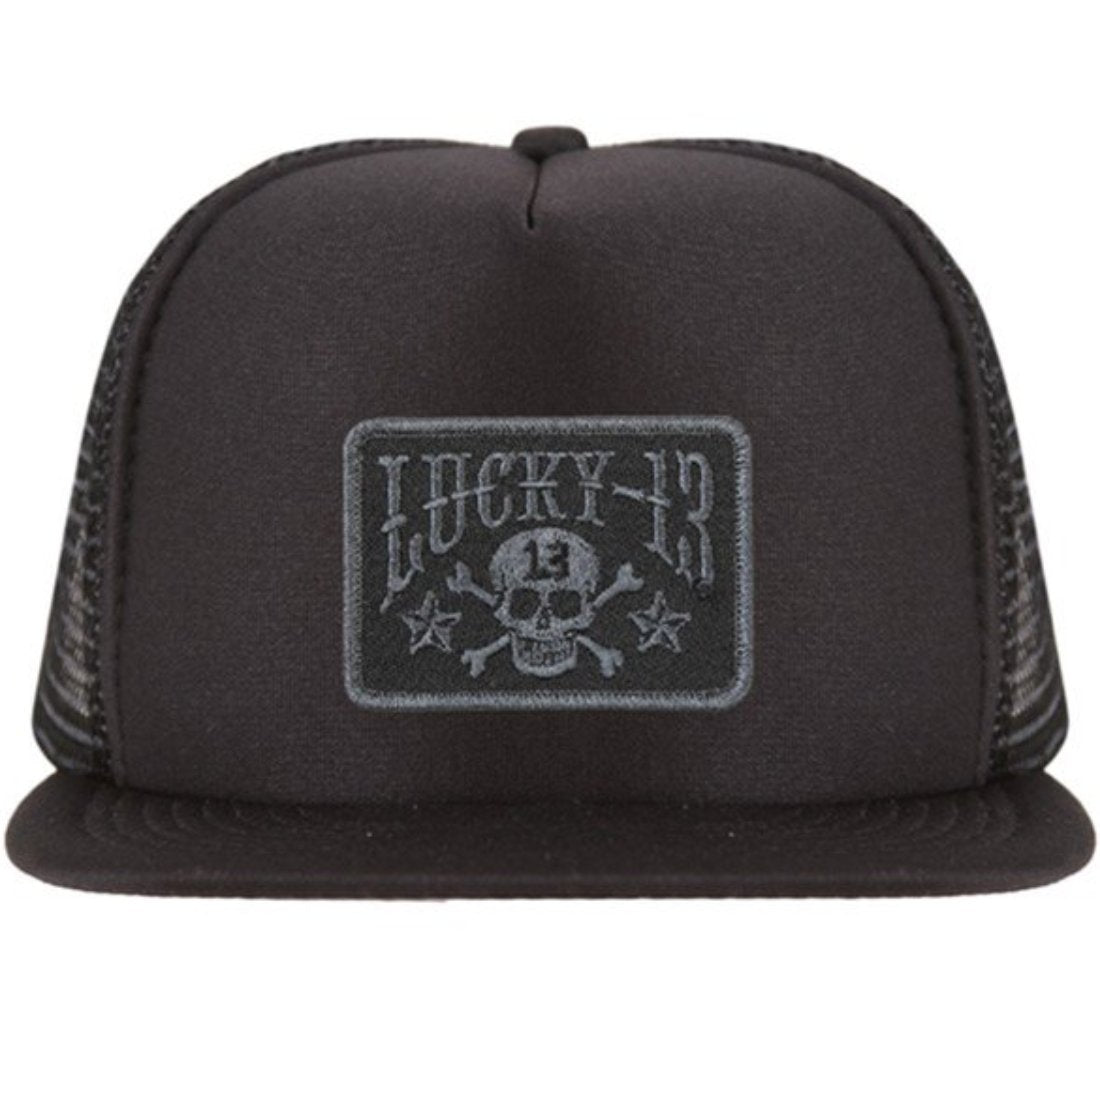 The SKULL STARS Flat Bill Trucker Hat - BLACK/BLACK